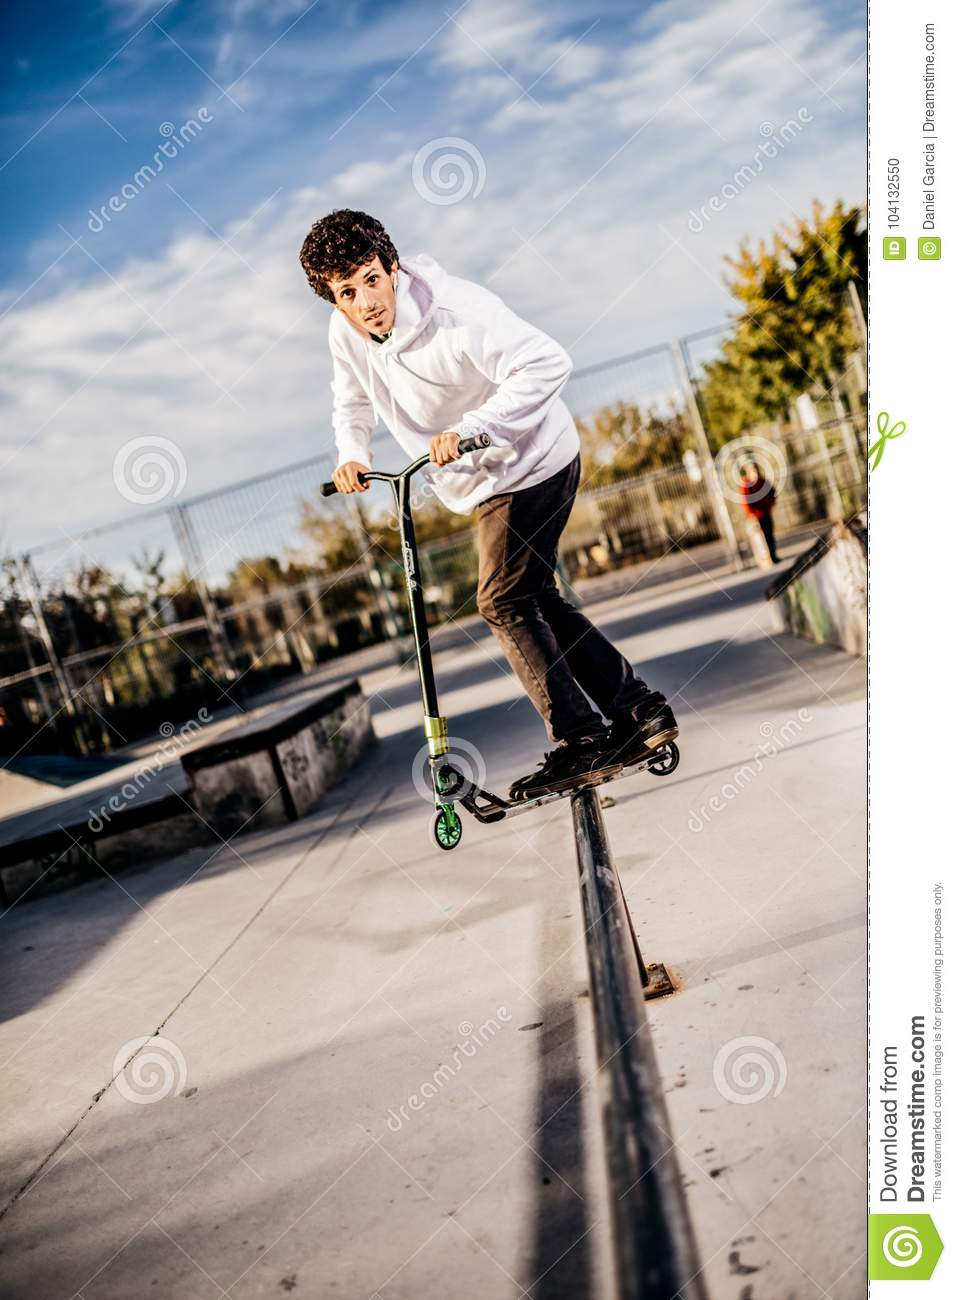 Young man with scooter making a Grind on Skatepark